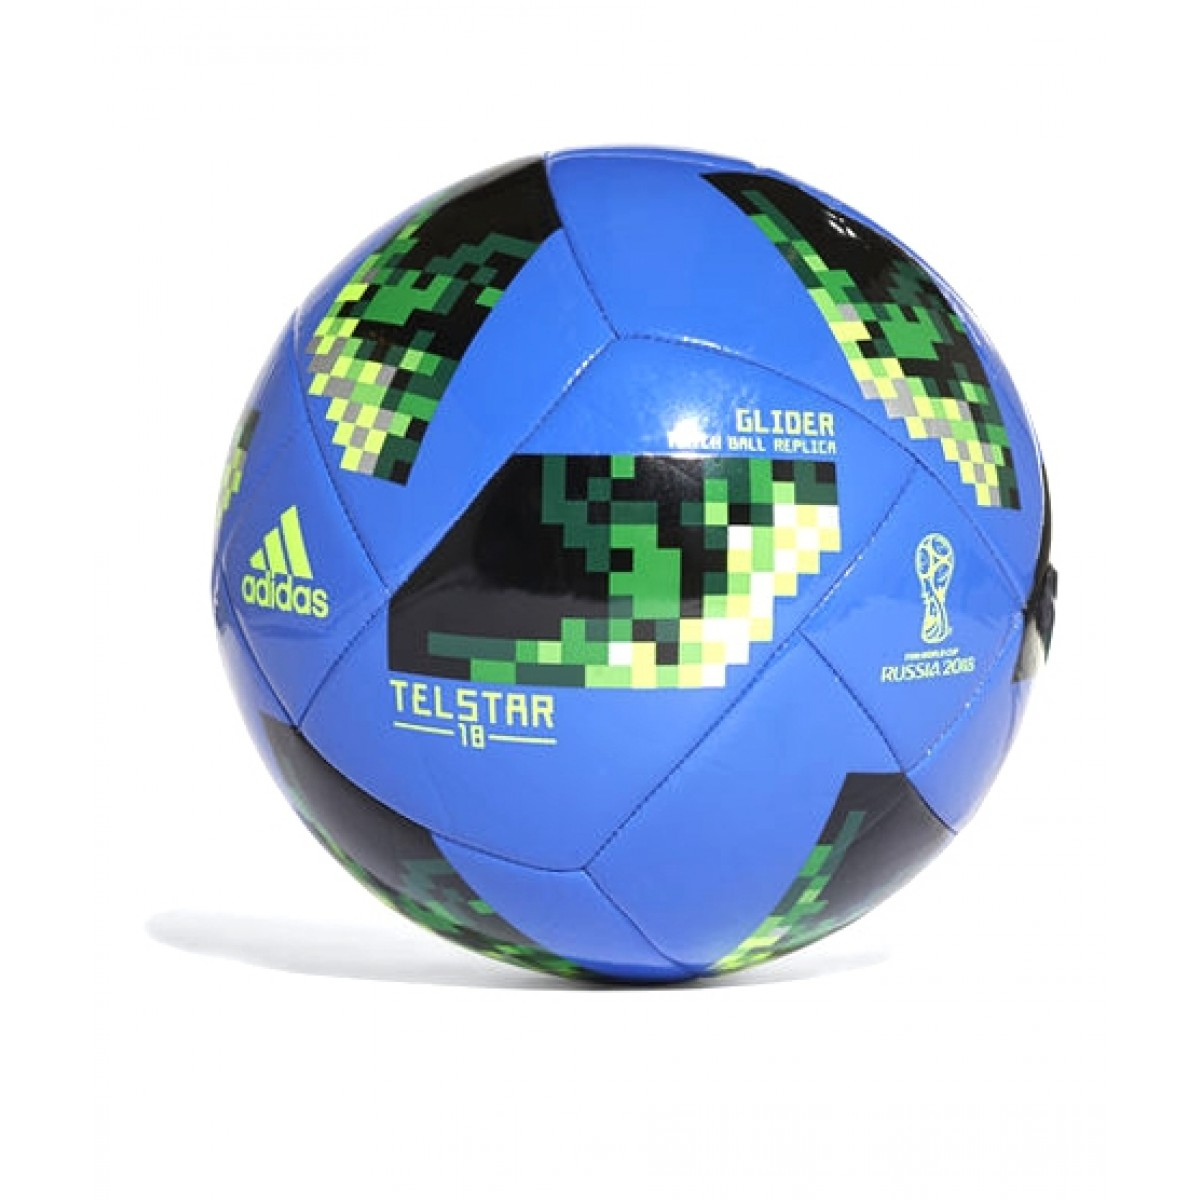 57ebacecb Football Mart Telstar Glider FIFA World Cup 2018 Official Football - Size 5  - Blue Price in Pakistan | Buy FIFA World Cup 2018 Official Football ...